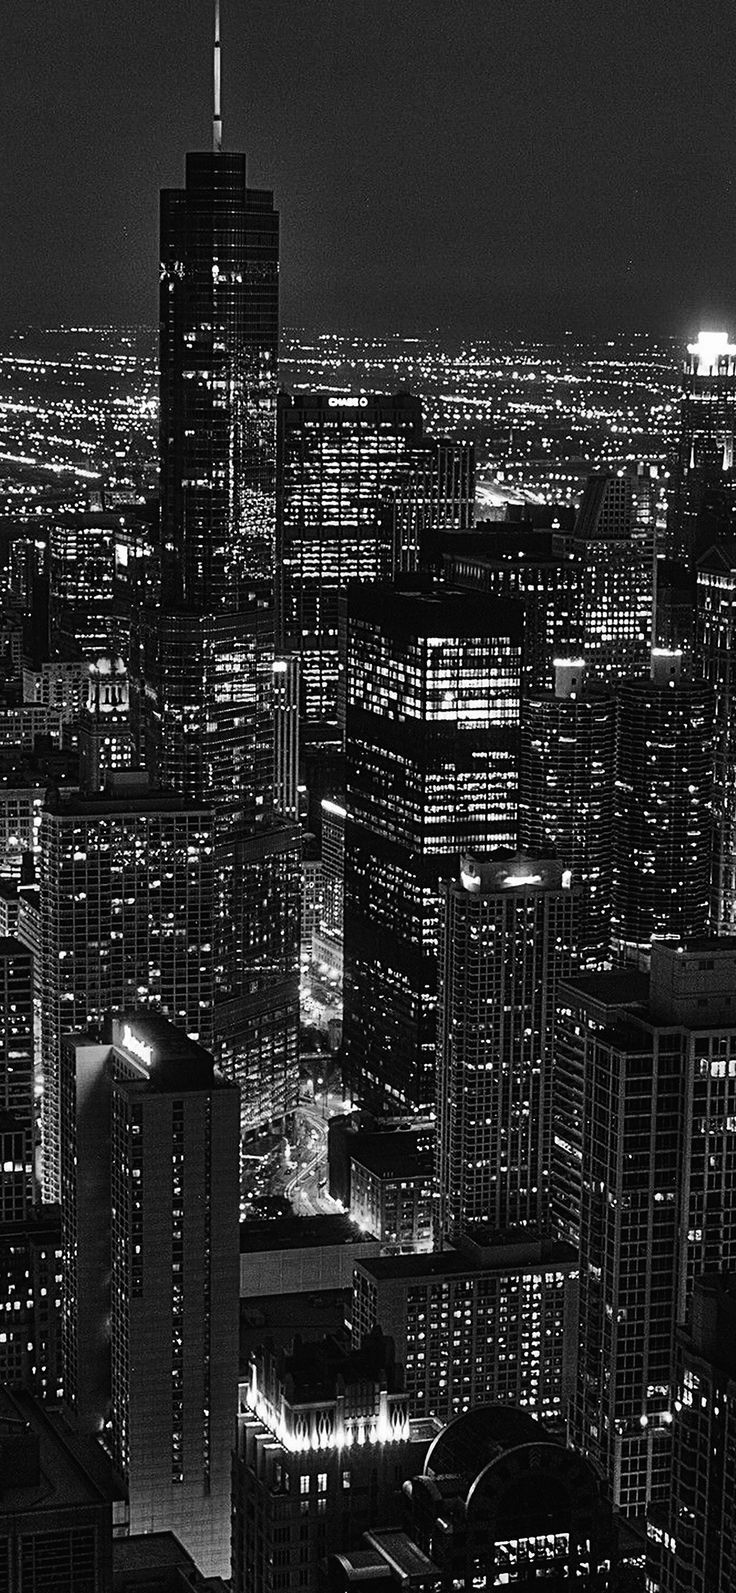 Iphone X Wallpaper : ml84-city-view-night-dark-bw via iPhoneXpapers.com Wallpape… – JAN GRNWD